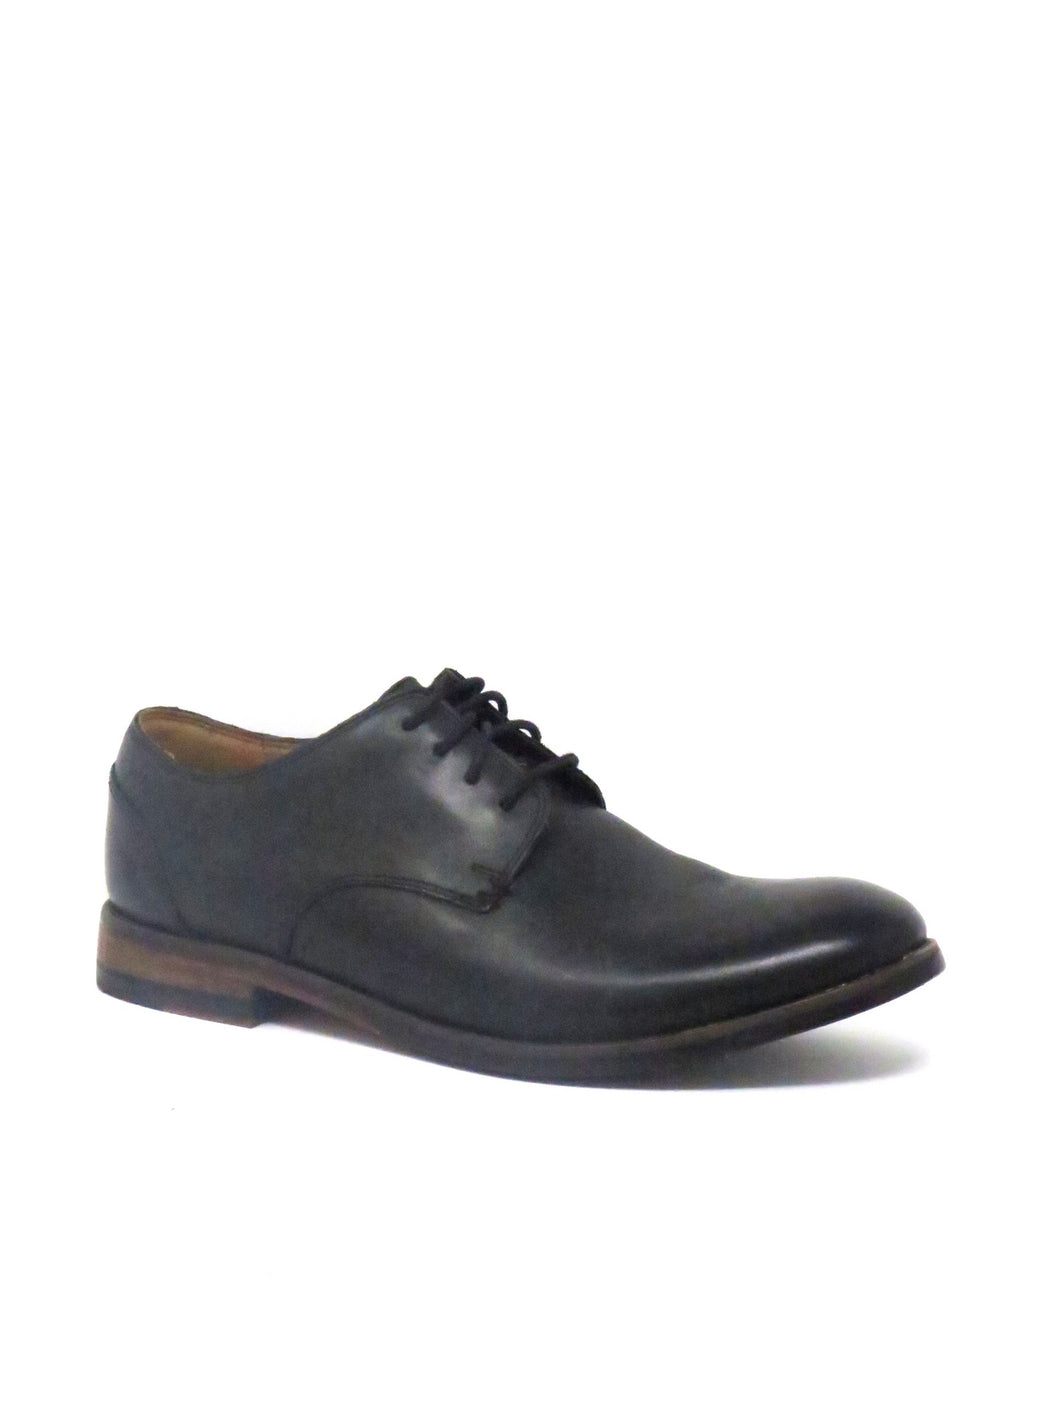 Clarks | 07743 | Exton Walk | Black